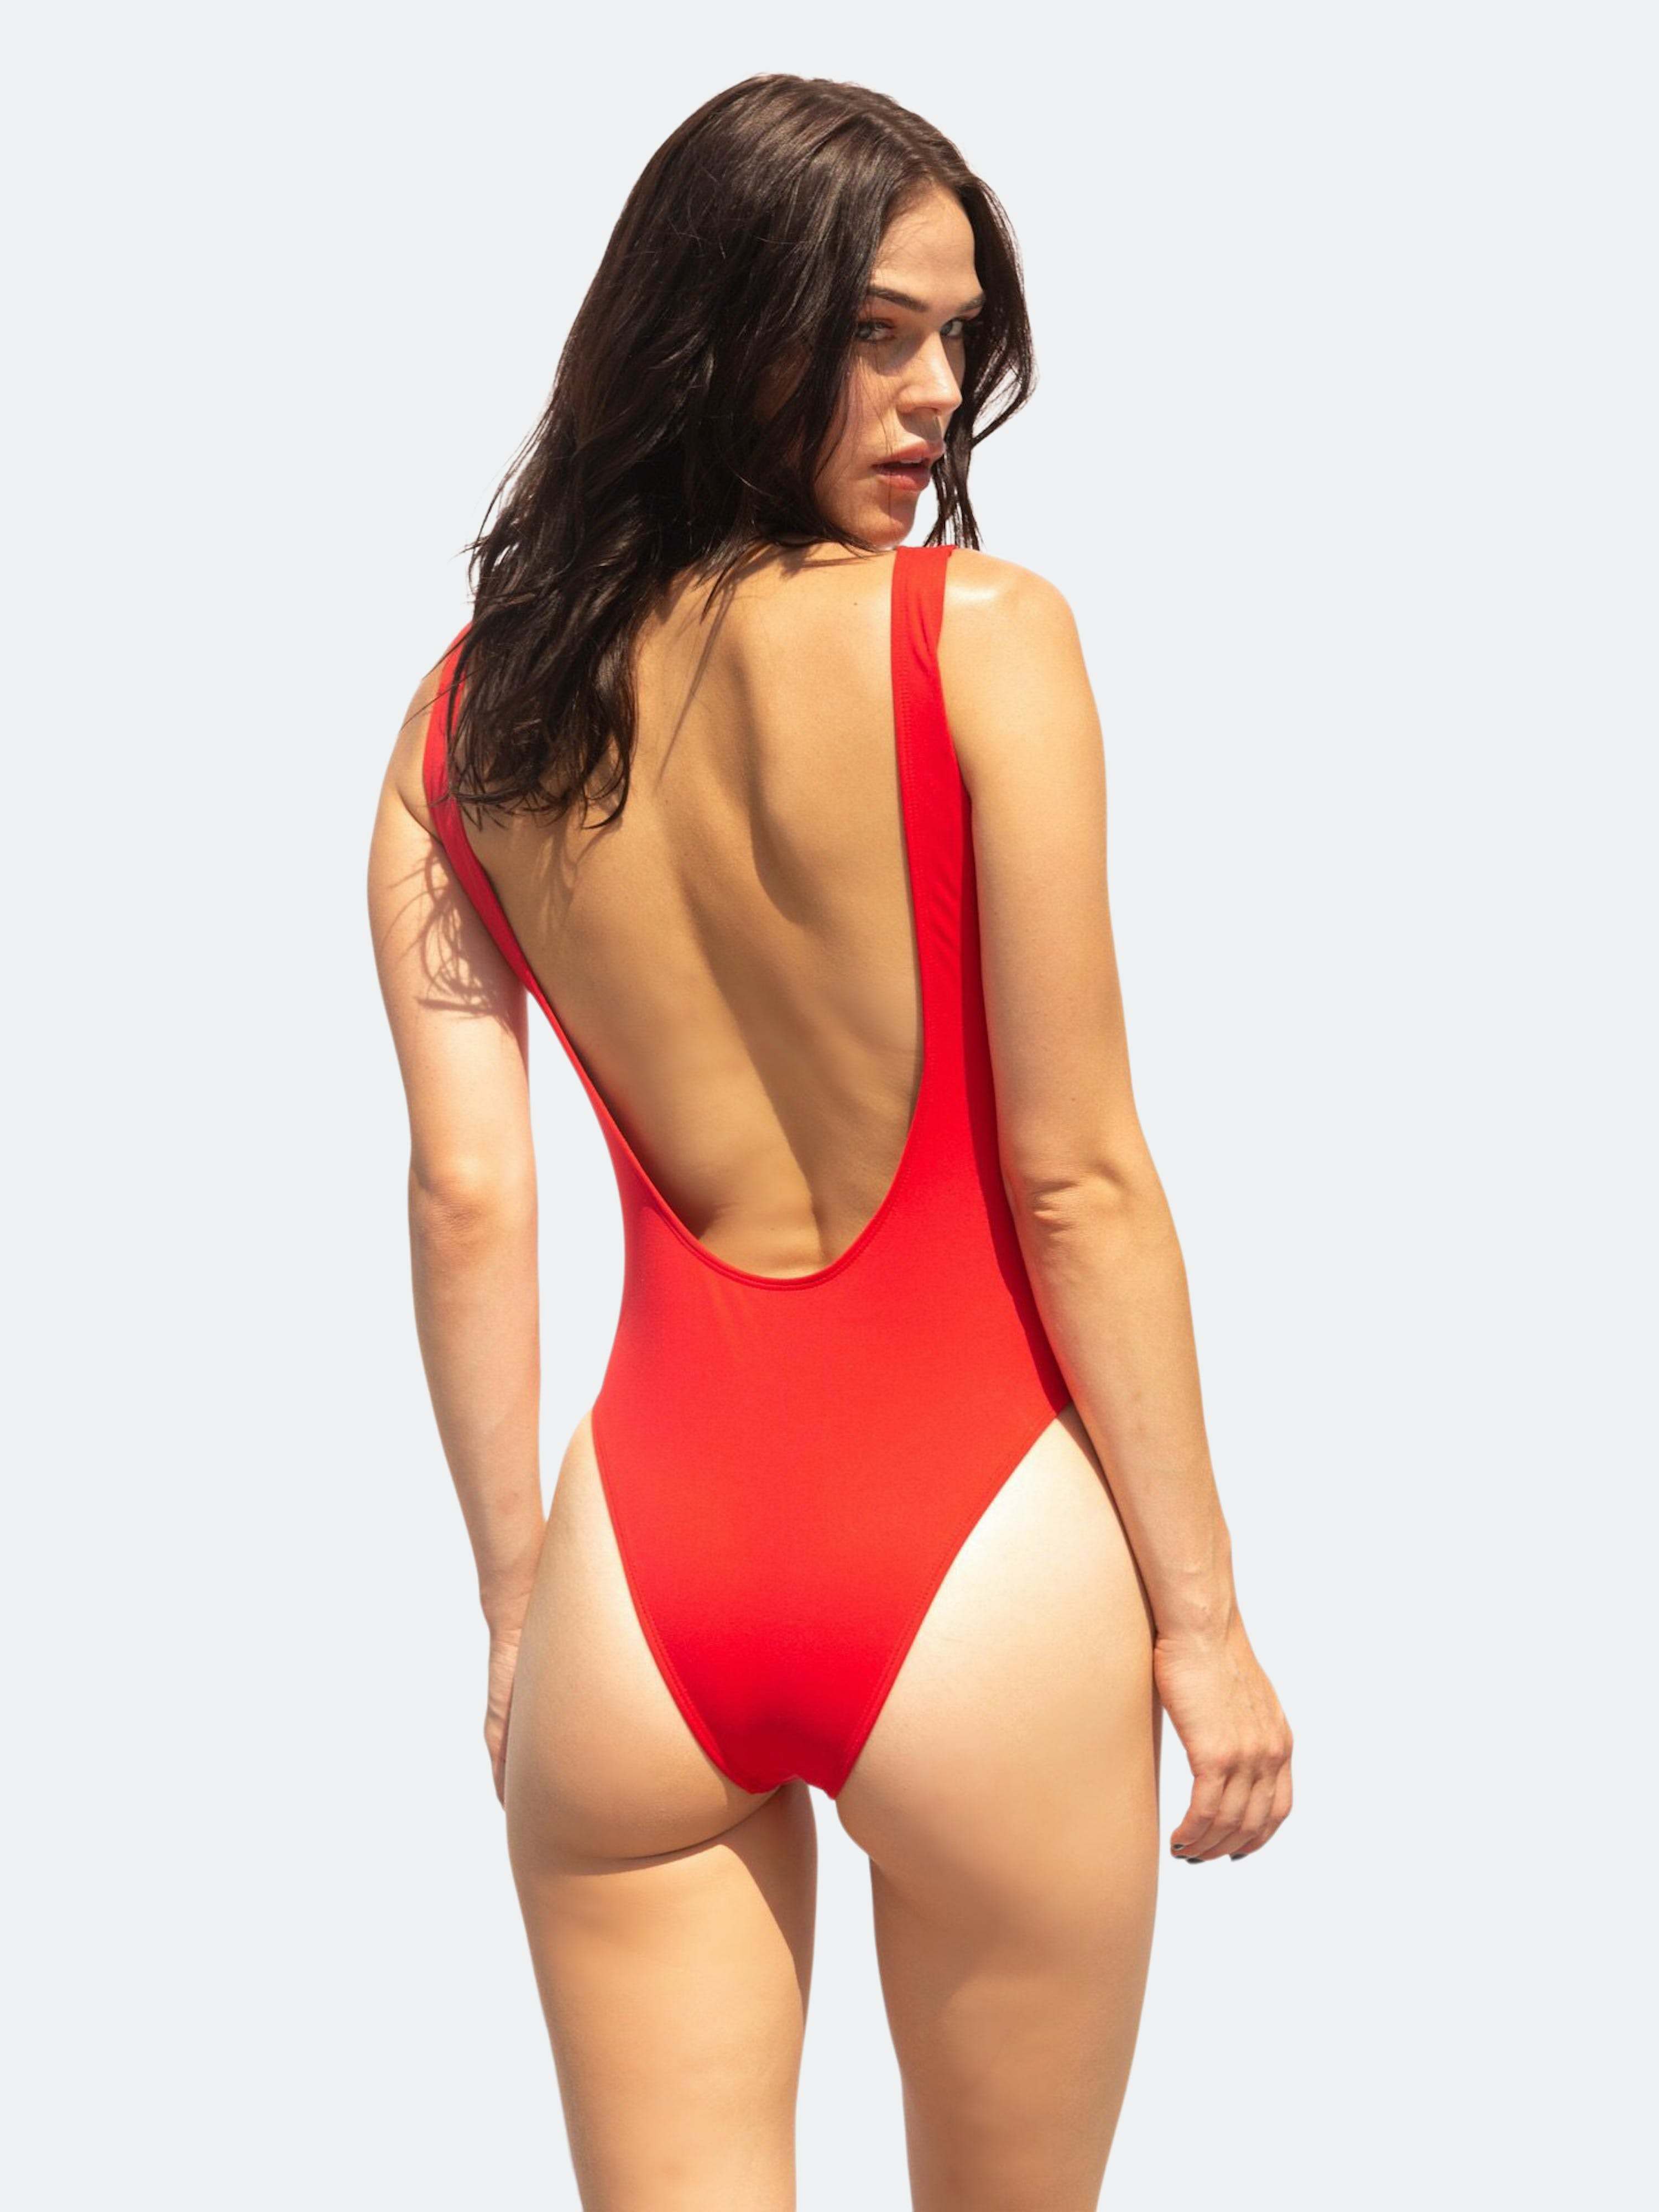 Bezzant Fire Swimsuit In Red